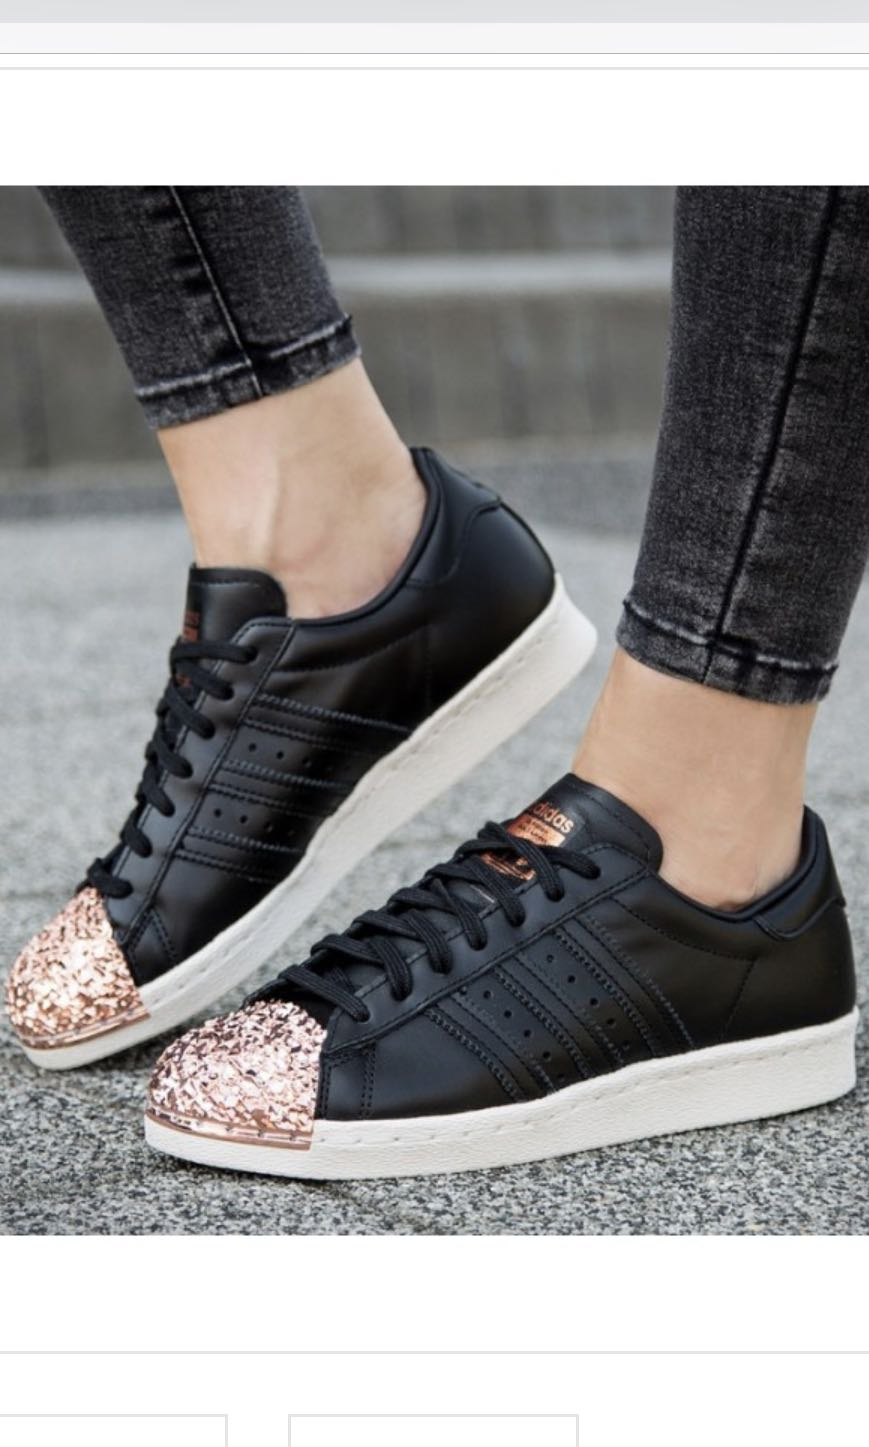 rose gold adidas originals superstar adidas Shoes & Sneakers On Sale